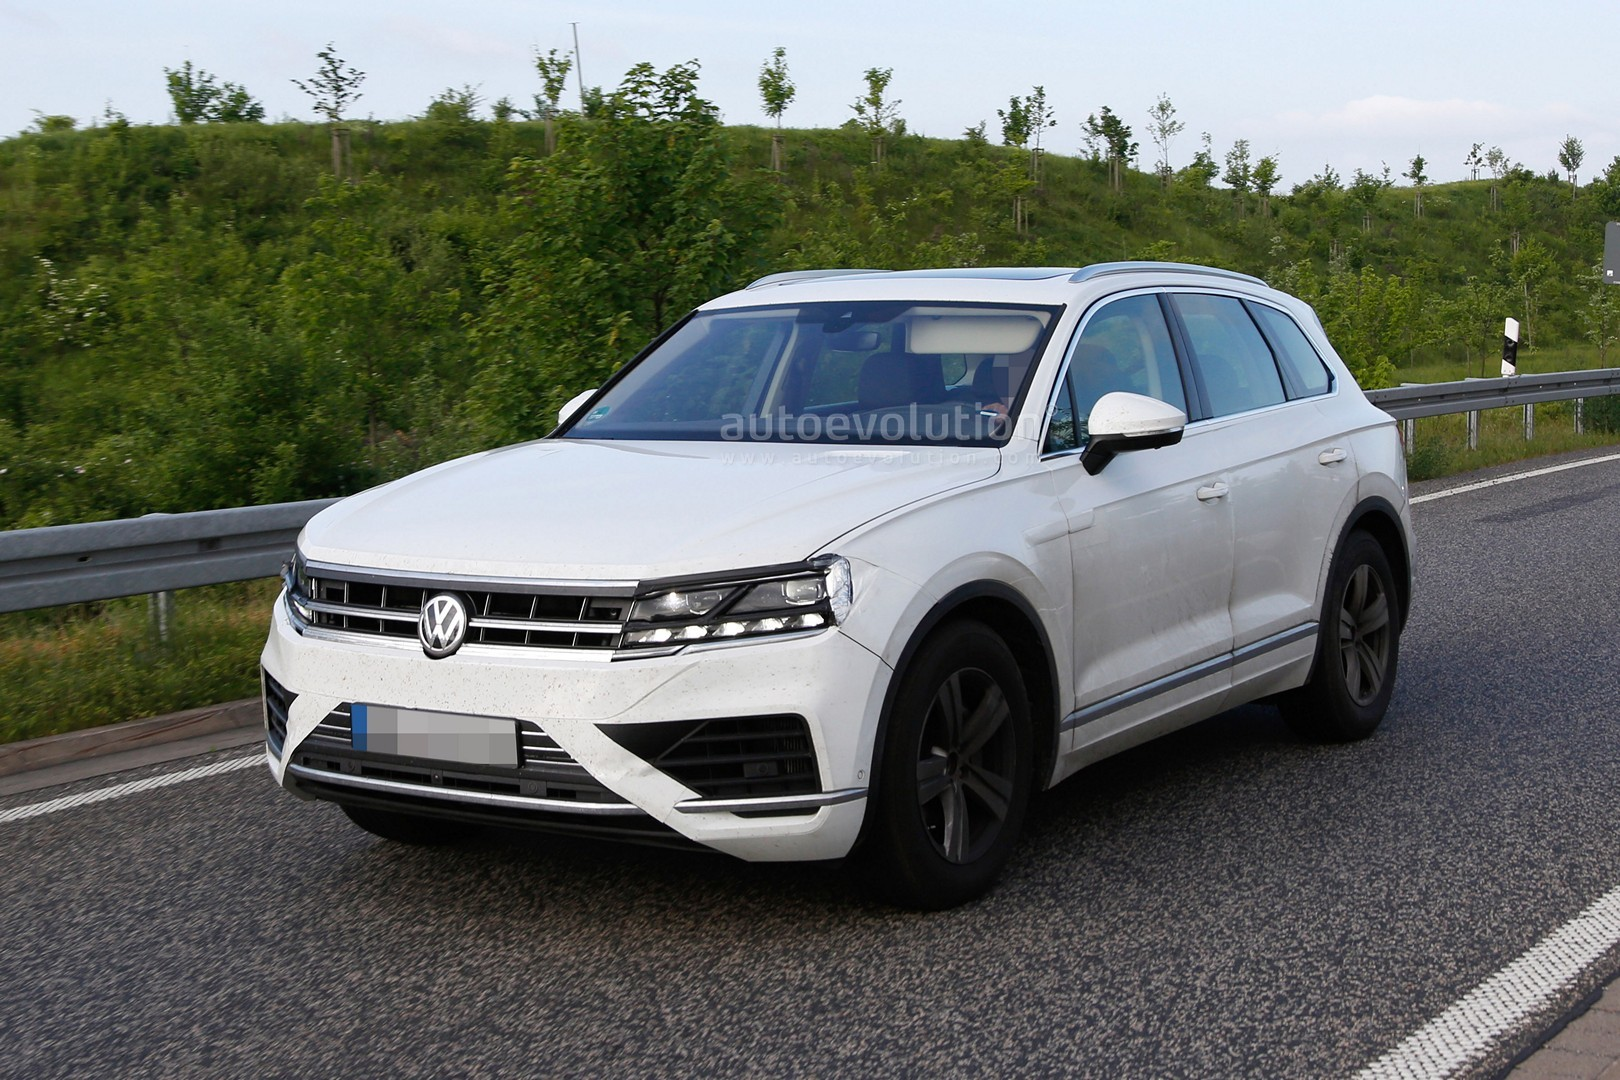 2018 volkswagen touareg spied almost undisguised autoevolution. Black Bedroom Furniture Sets. Home Design Ideas